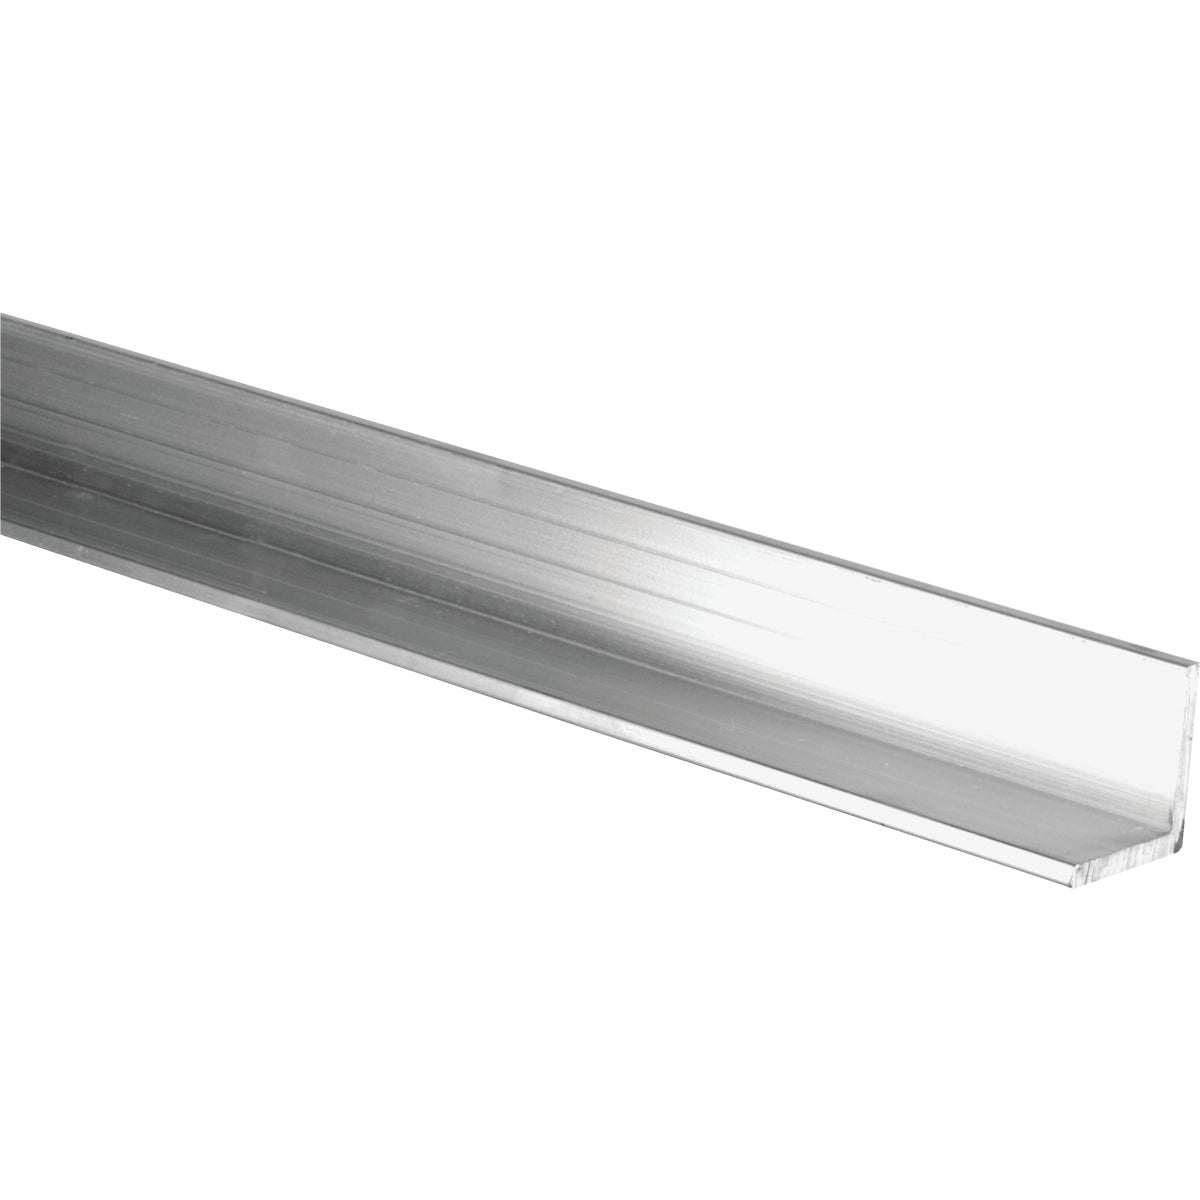 1/16X3/4X8' ALUM ANGLE - N258285 by National Mfg Co